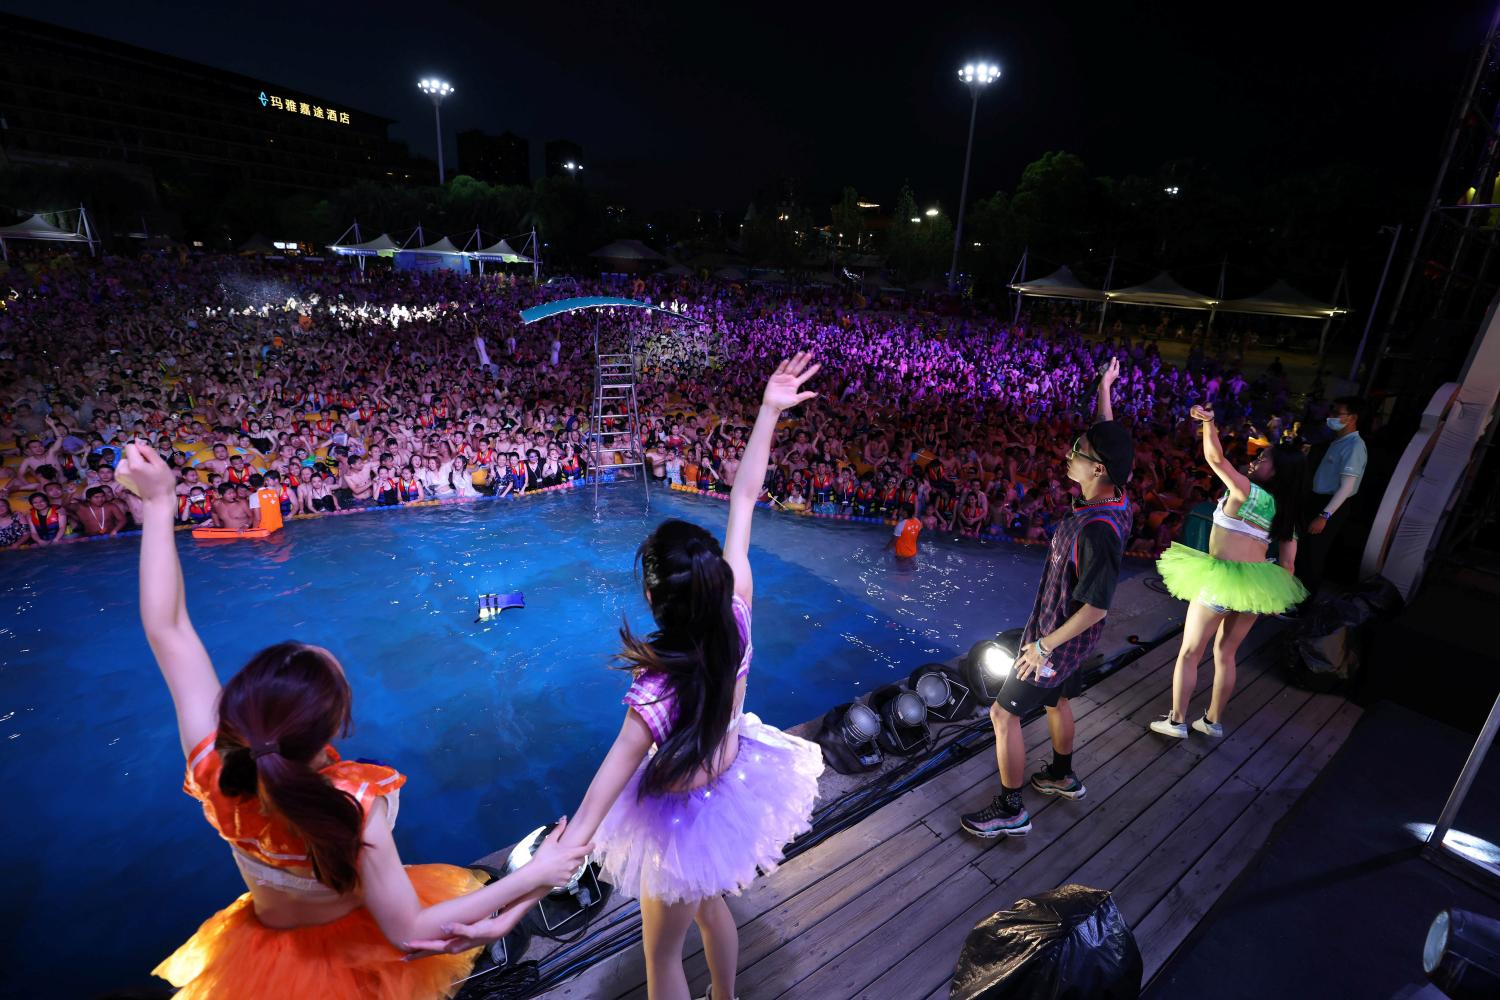 A crowd watch a performance at the Wuhan Maya Beach Park on Aug 15. REUTERS